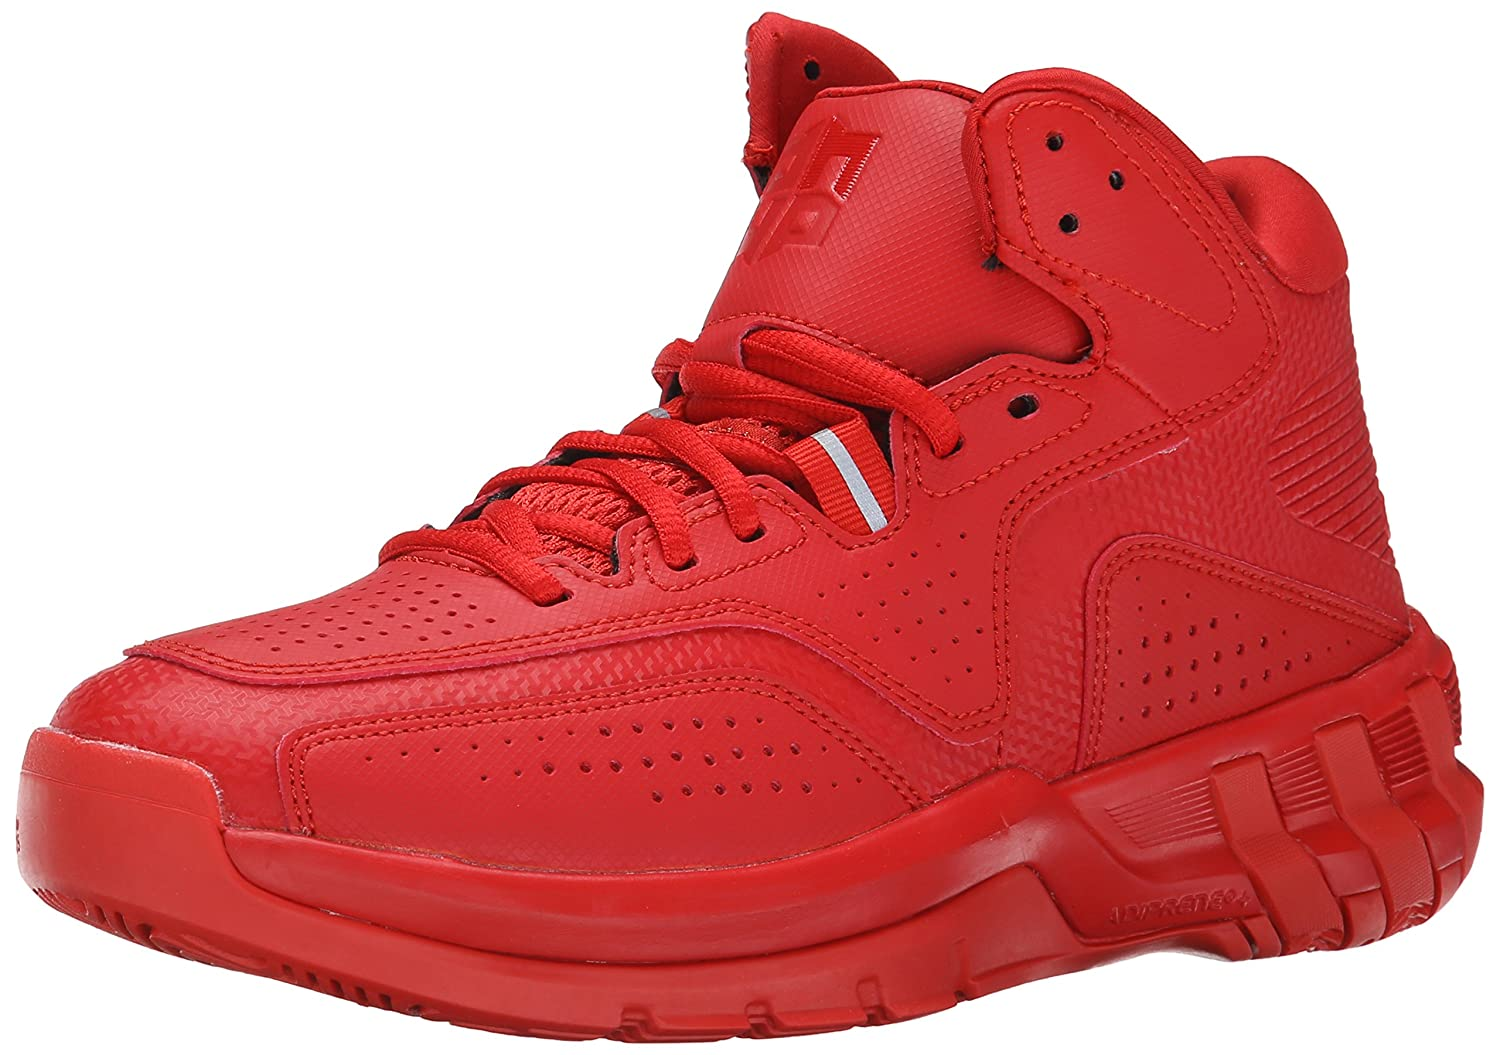 newest f7ce4 ed494 Adidas Performance Men s D Howard 6 Basketball Shoe, Red Red Red, 12.5 M US   Amazon.ca  Shoes   Handbags